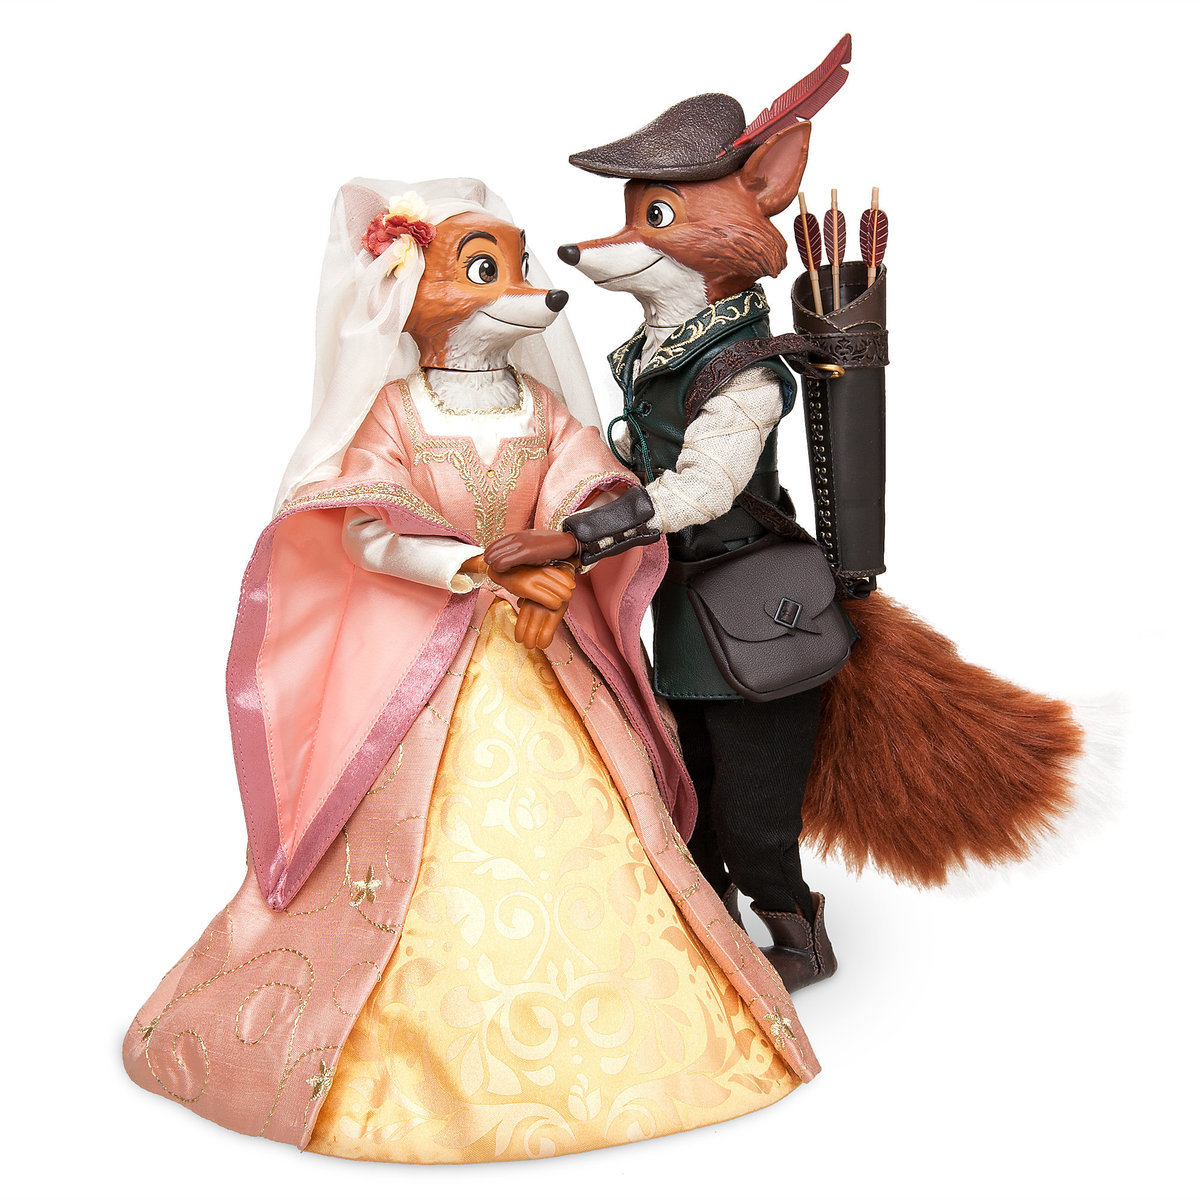 c5bbeea19f0 Product Image of Robin Hood and Maid Marian Doll Set - Disney Designer  Fairytale Collection -